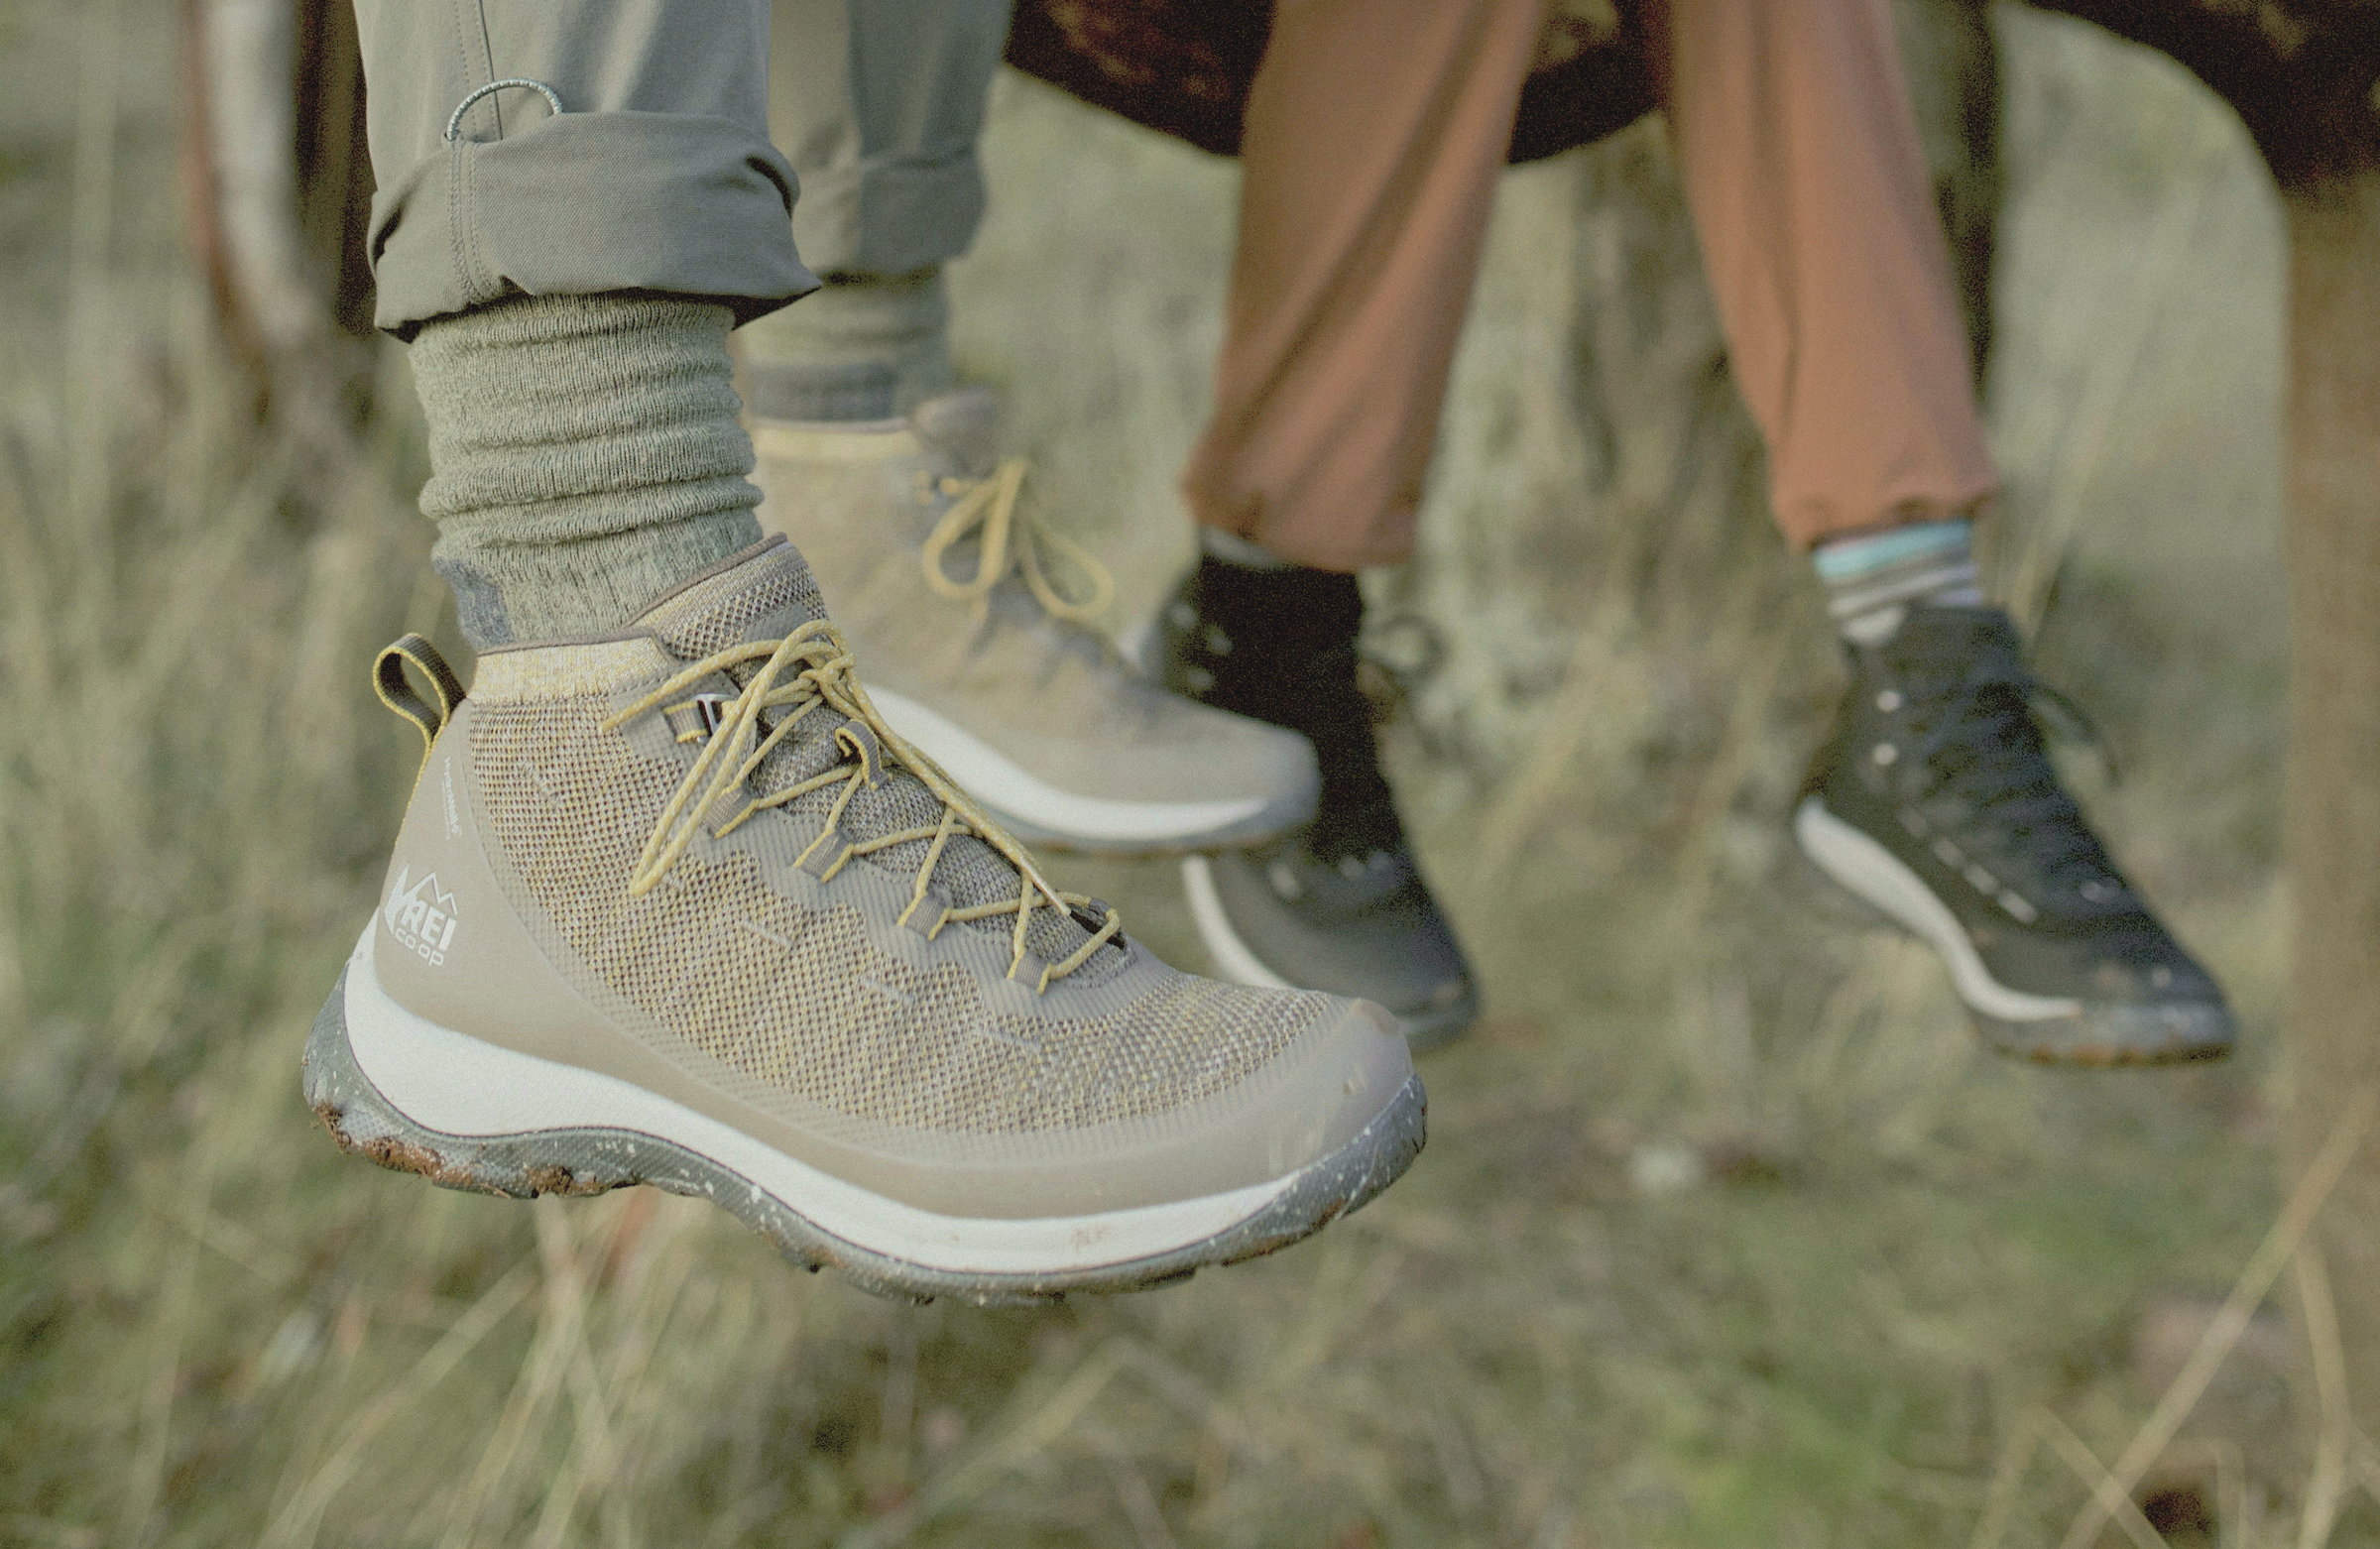 REI Flash hiking boot on feet with grass in background